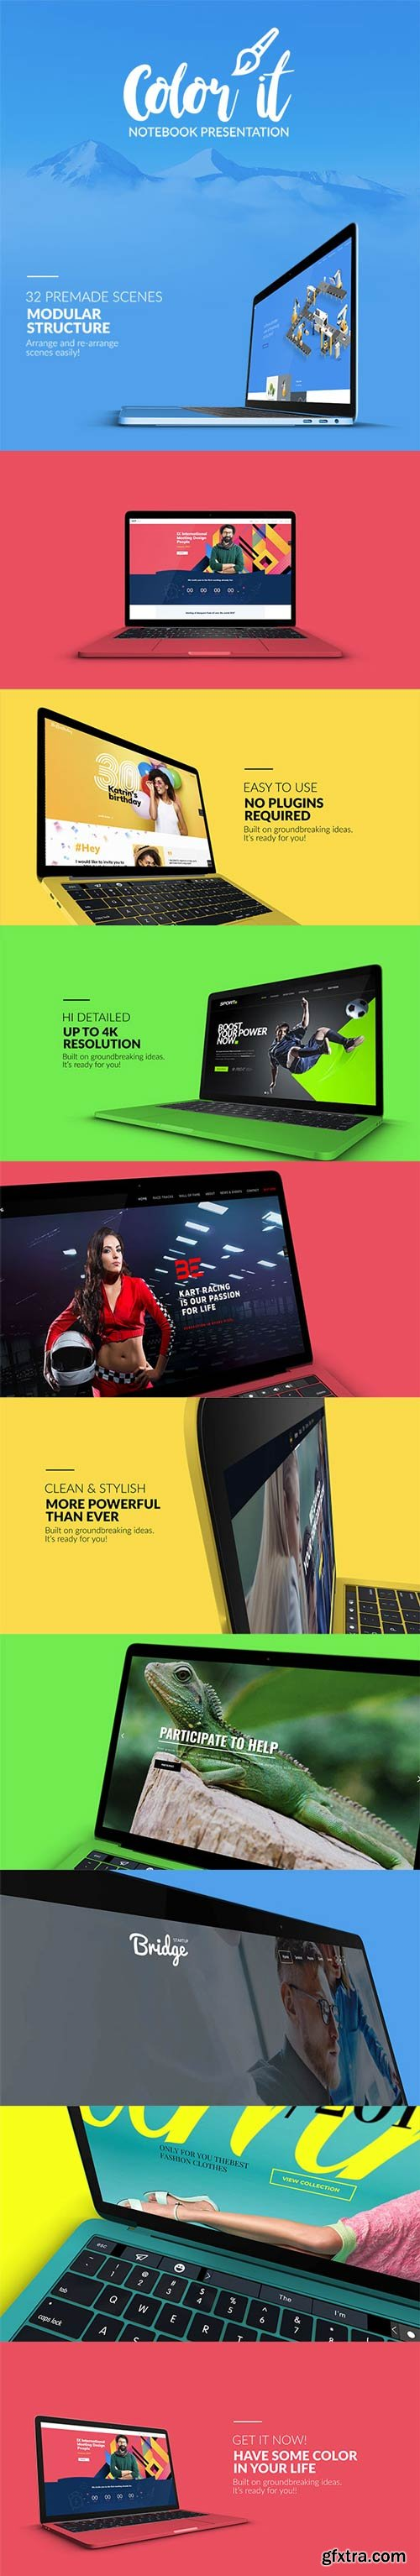 Videohive - Color it - Notebook Presentation - 21823853